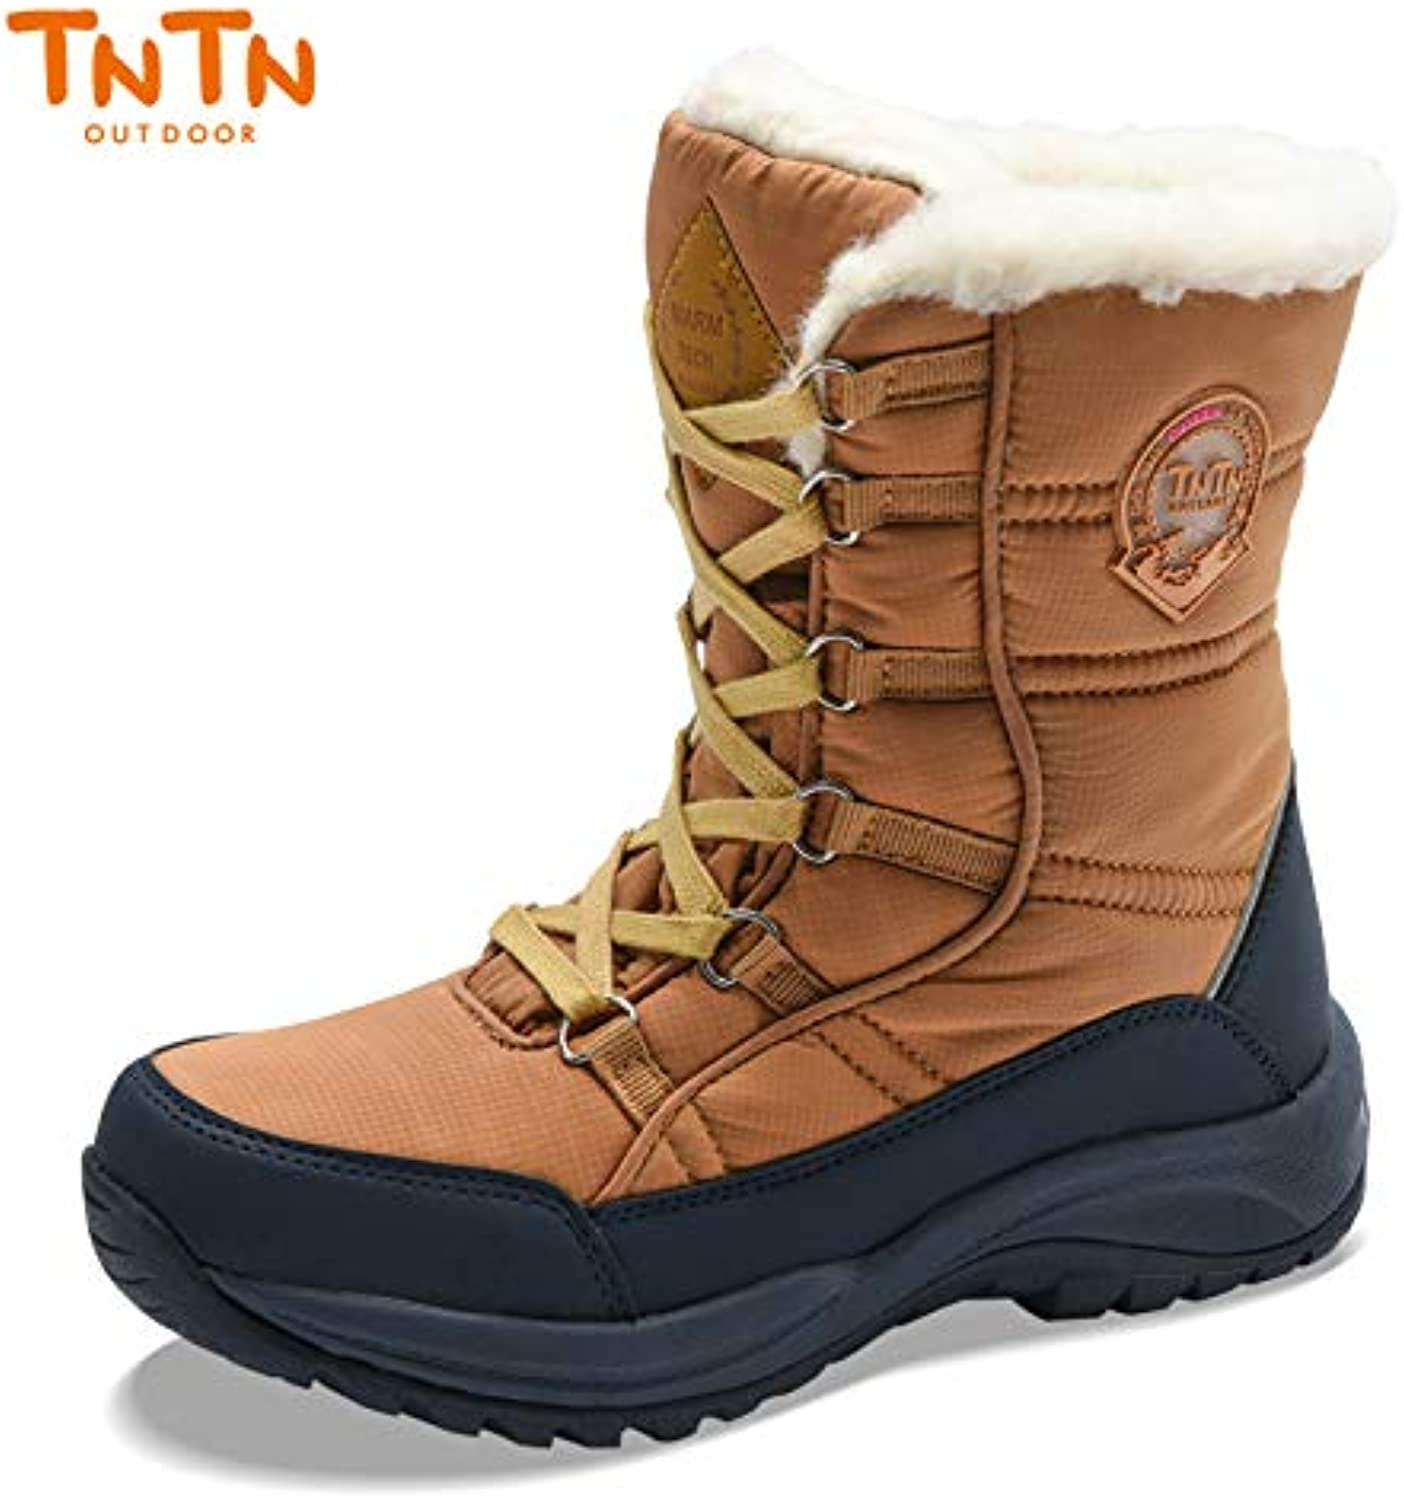 TNTN Outdoor Winter High Snow Country Thickened Wool Warm Cashmere shoes Cotton Boots for Women and Men Waterproof Snow Sking